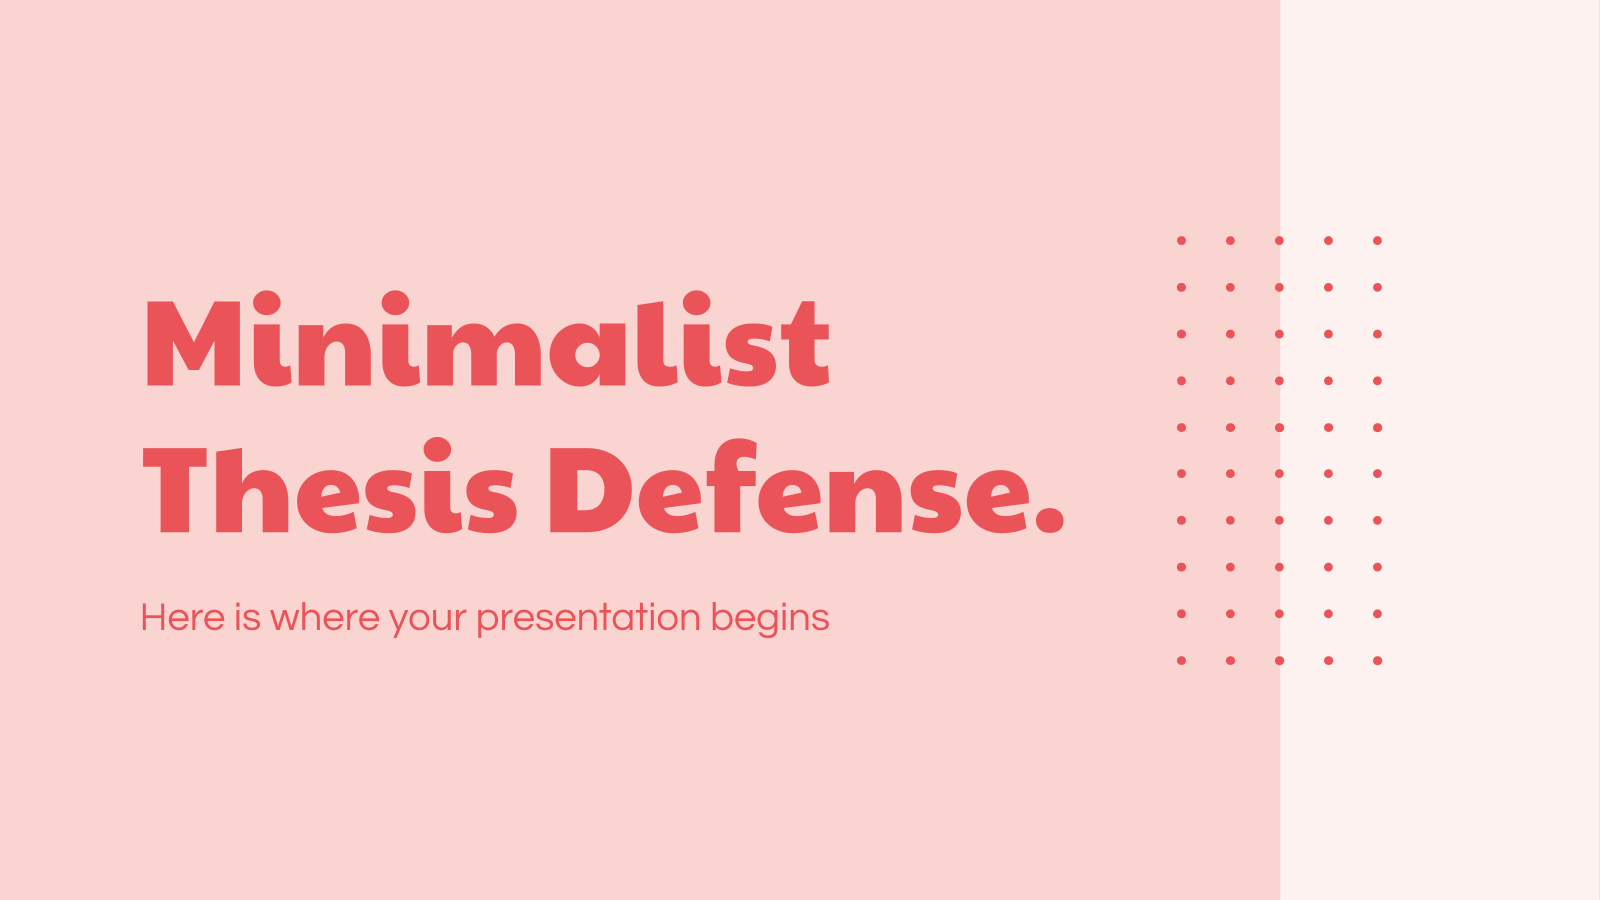 Minimalist Thesis Defense presentation template